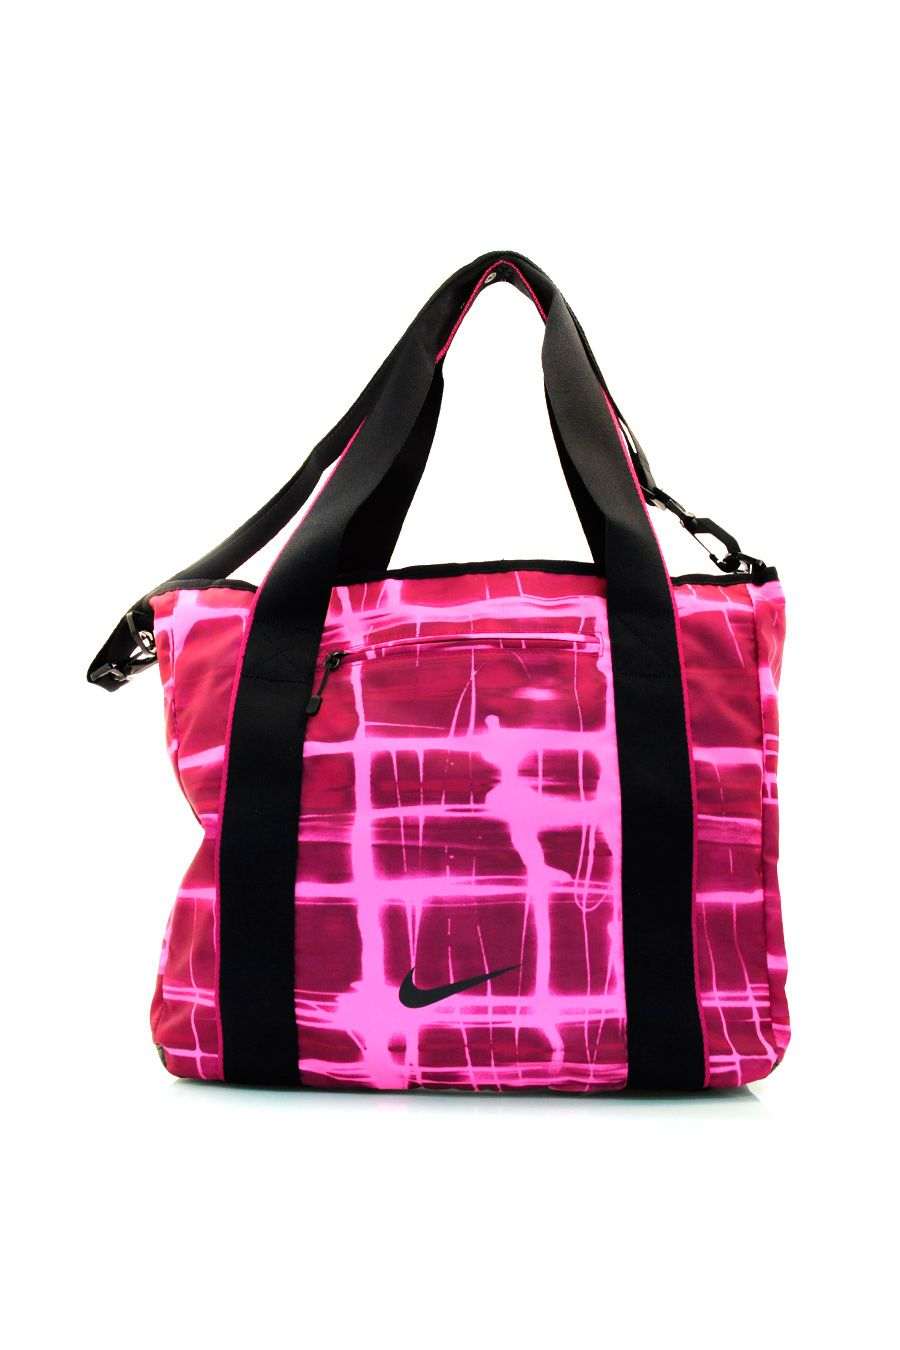 1d2873dac9b1 Nike Backpacks - Nike Printed Handbag